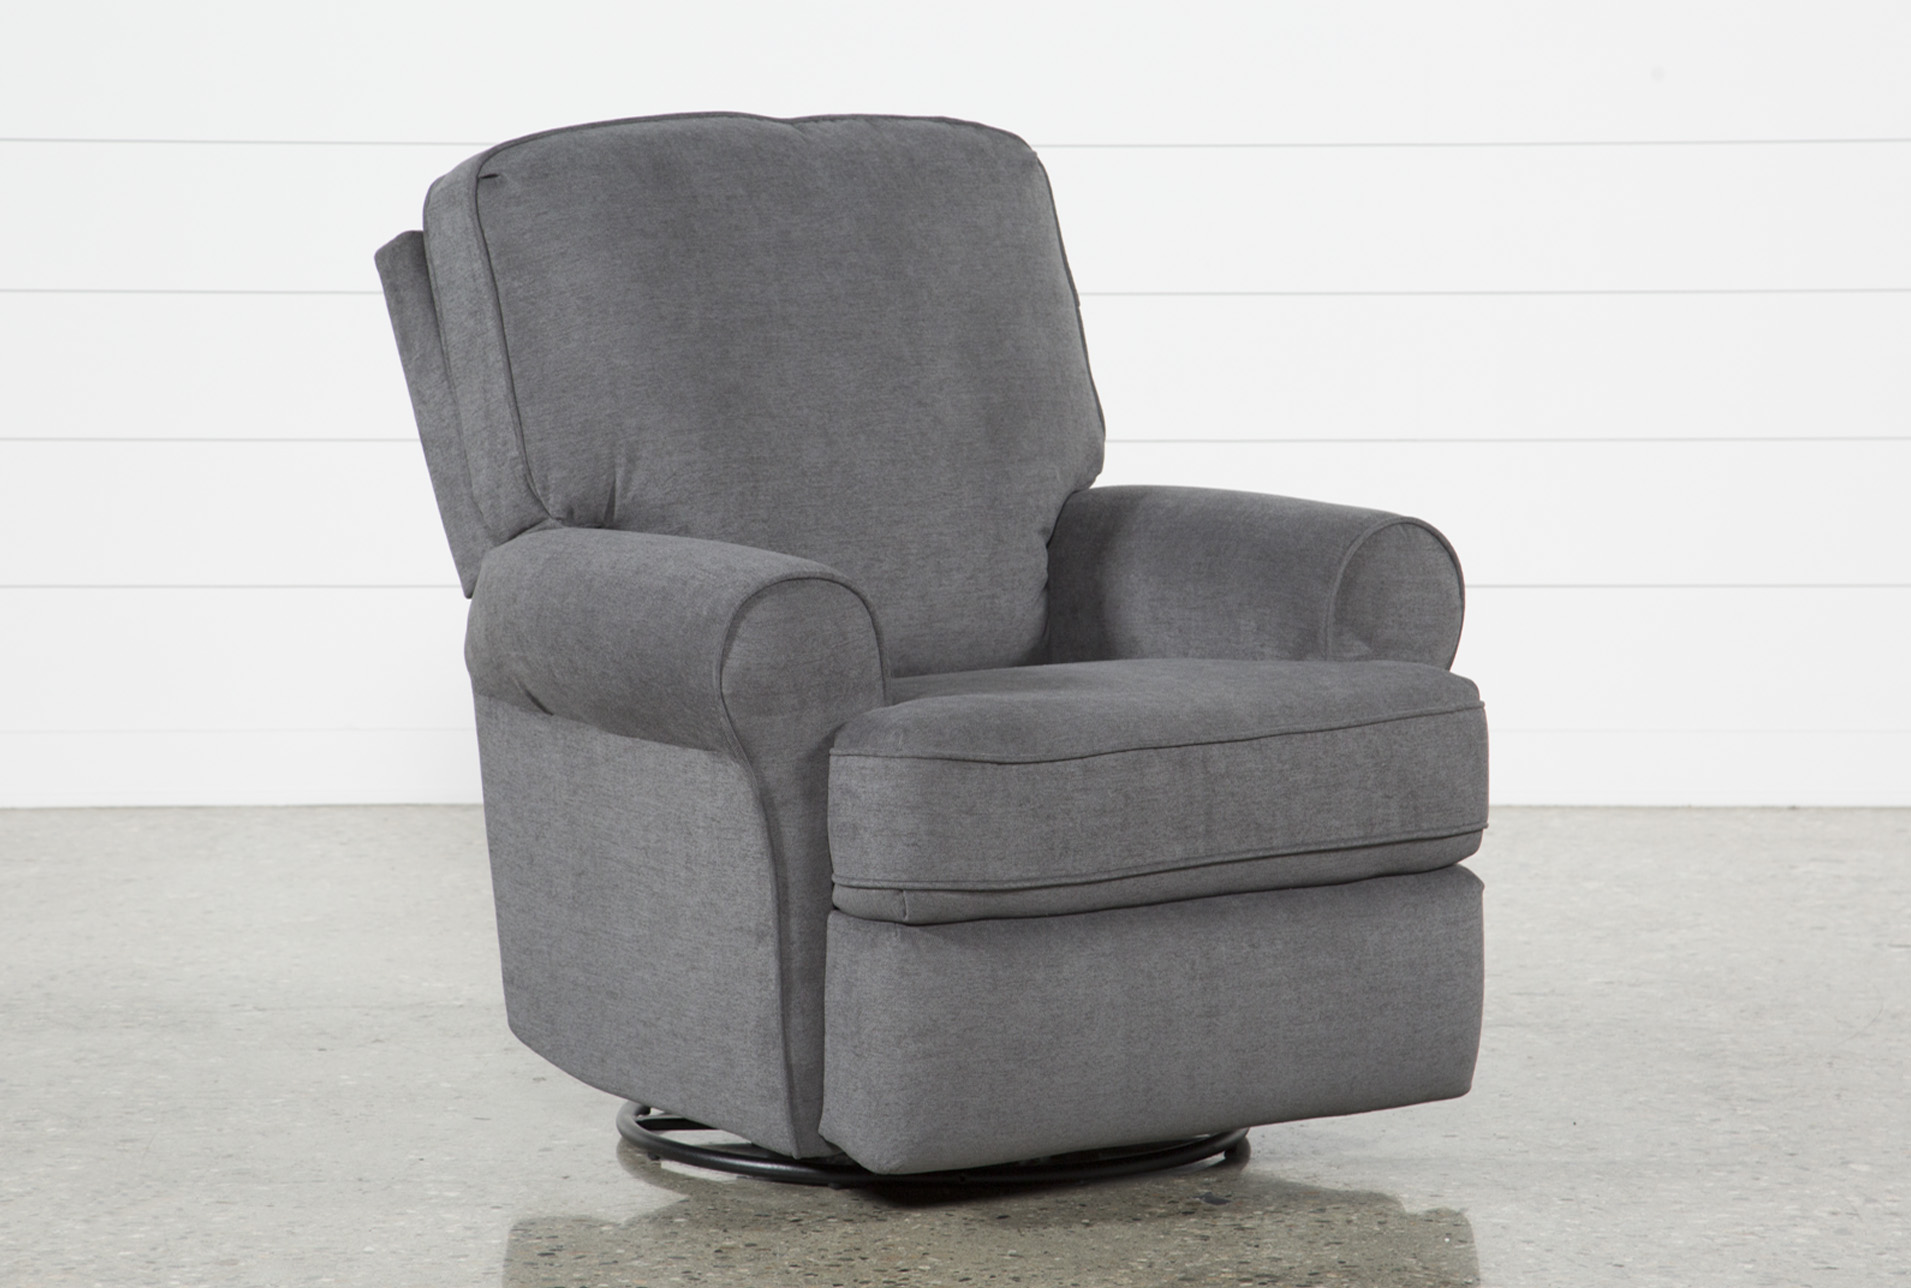 Abbey Swivel Glider Recliner (Qty: 1) Has Been Successfully Added To Your  Cart.